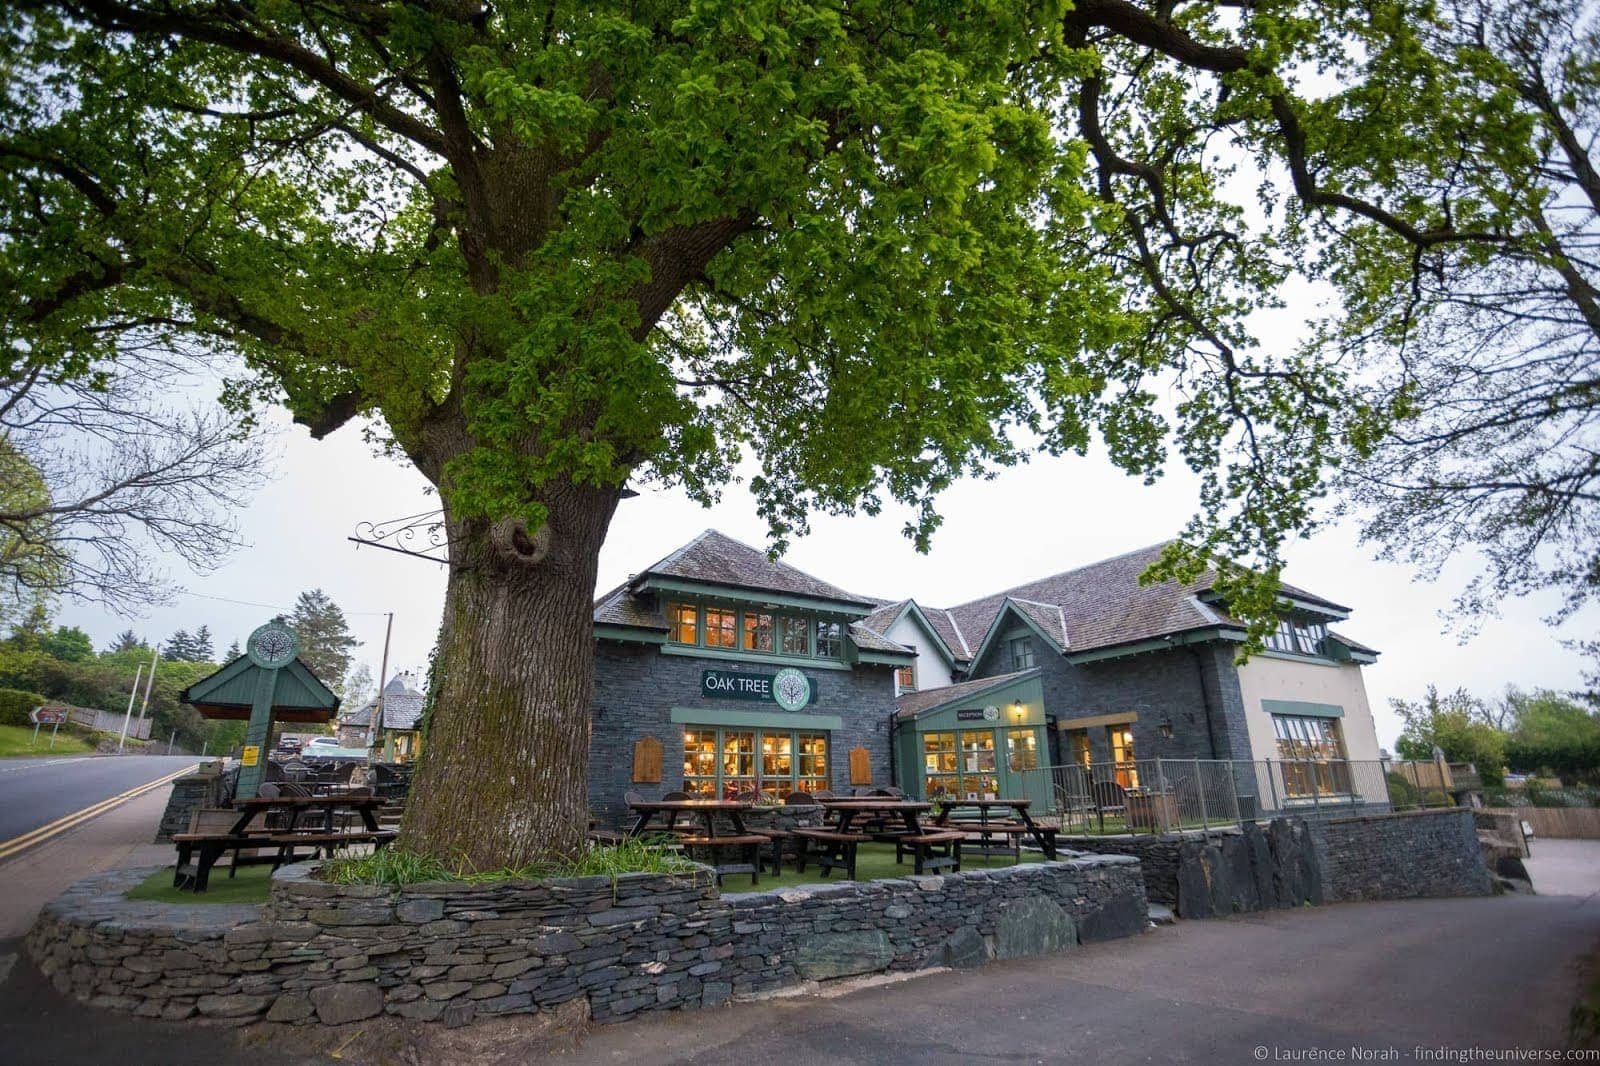 Oak tree inn Trossachs Loch Lomond_by_Laurence Norah-2